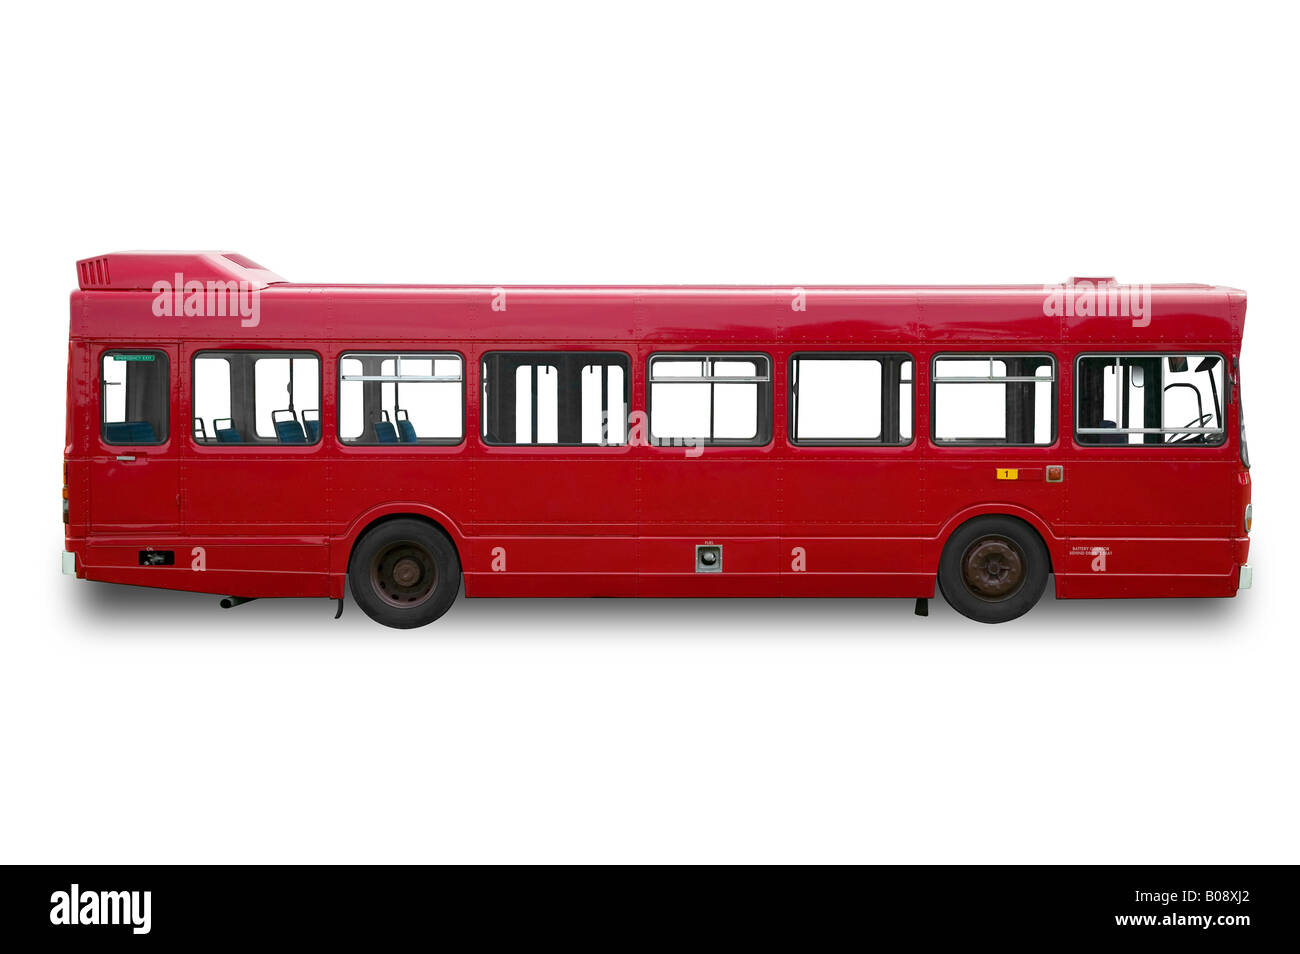 Red single deck bus coach isolated on a white background - Stock Image